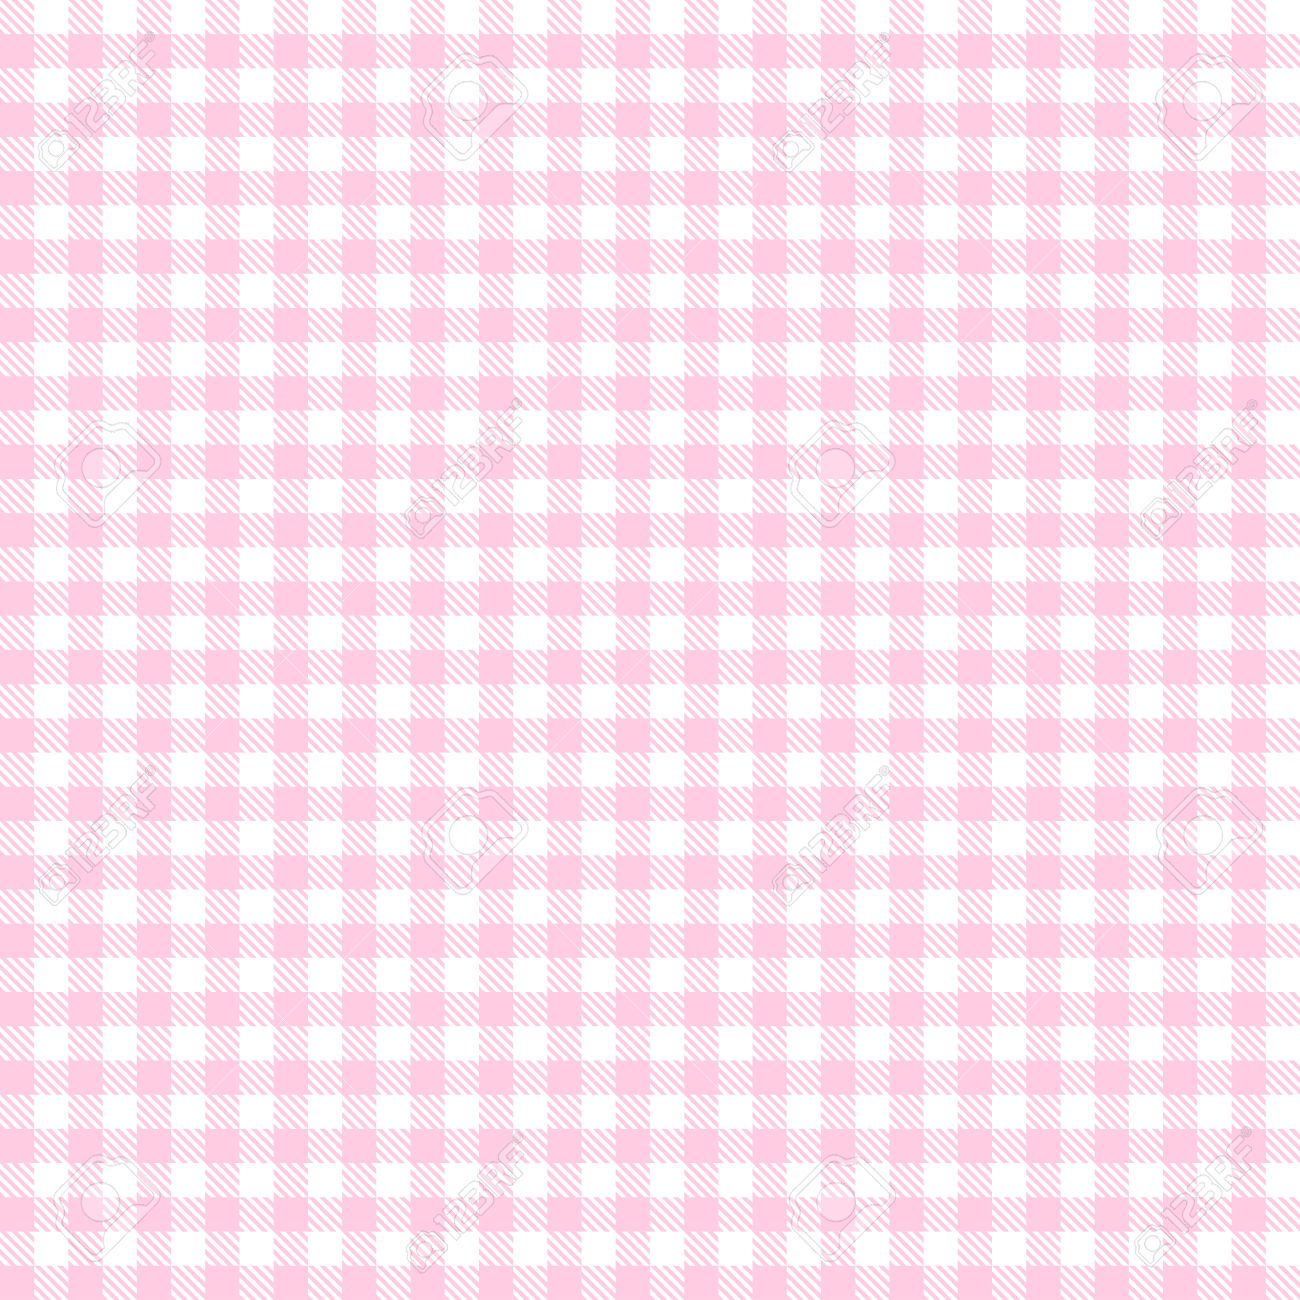 Endless Light Red Checkered Table Cloth Background Stock Vector   36830157